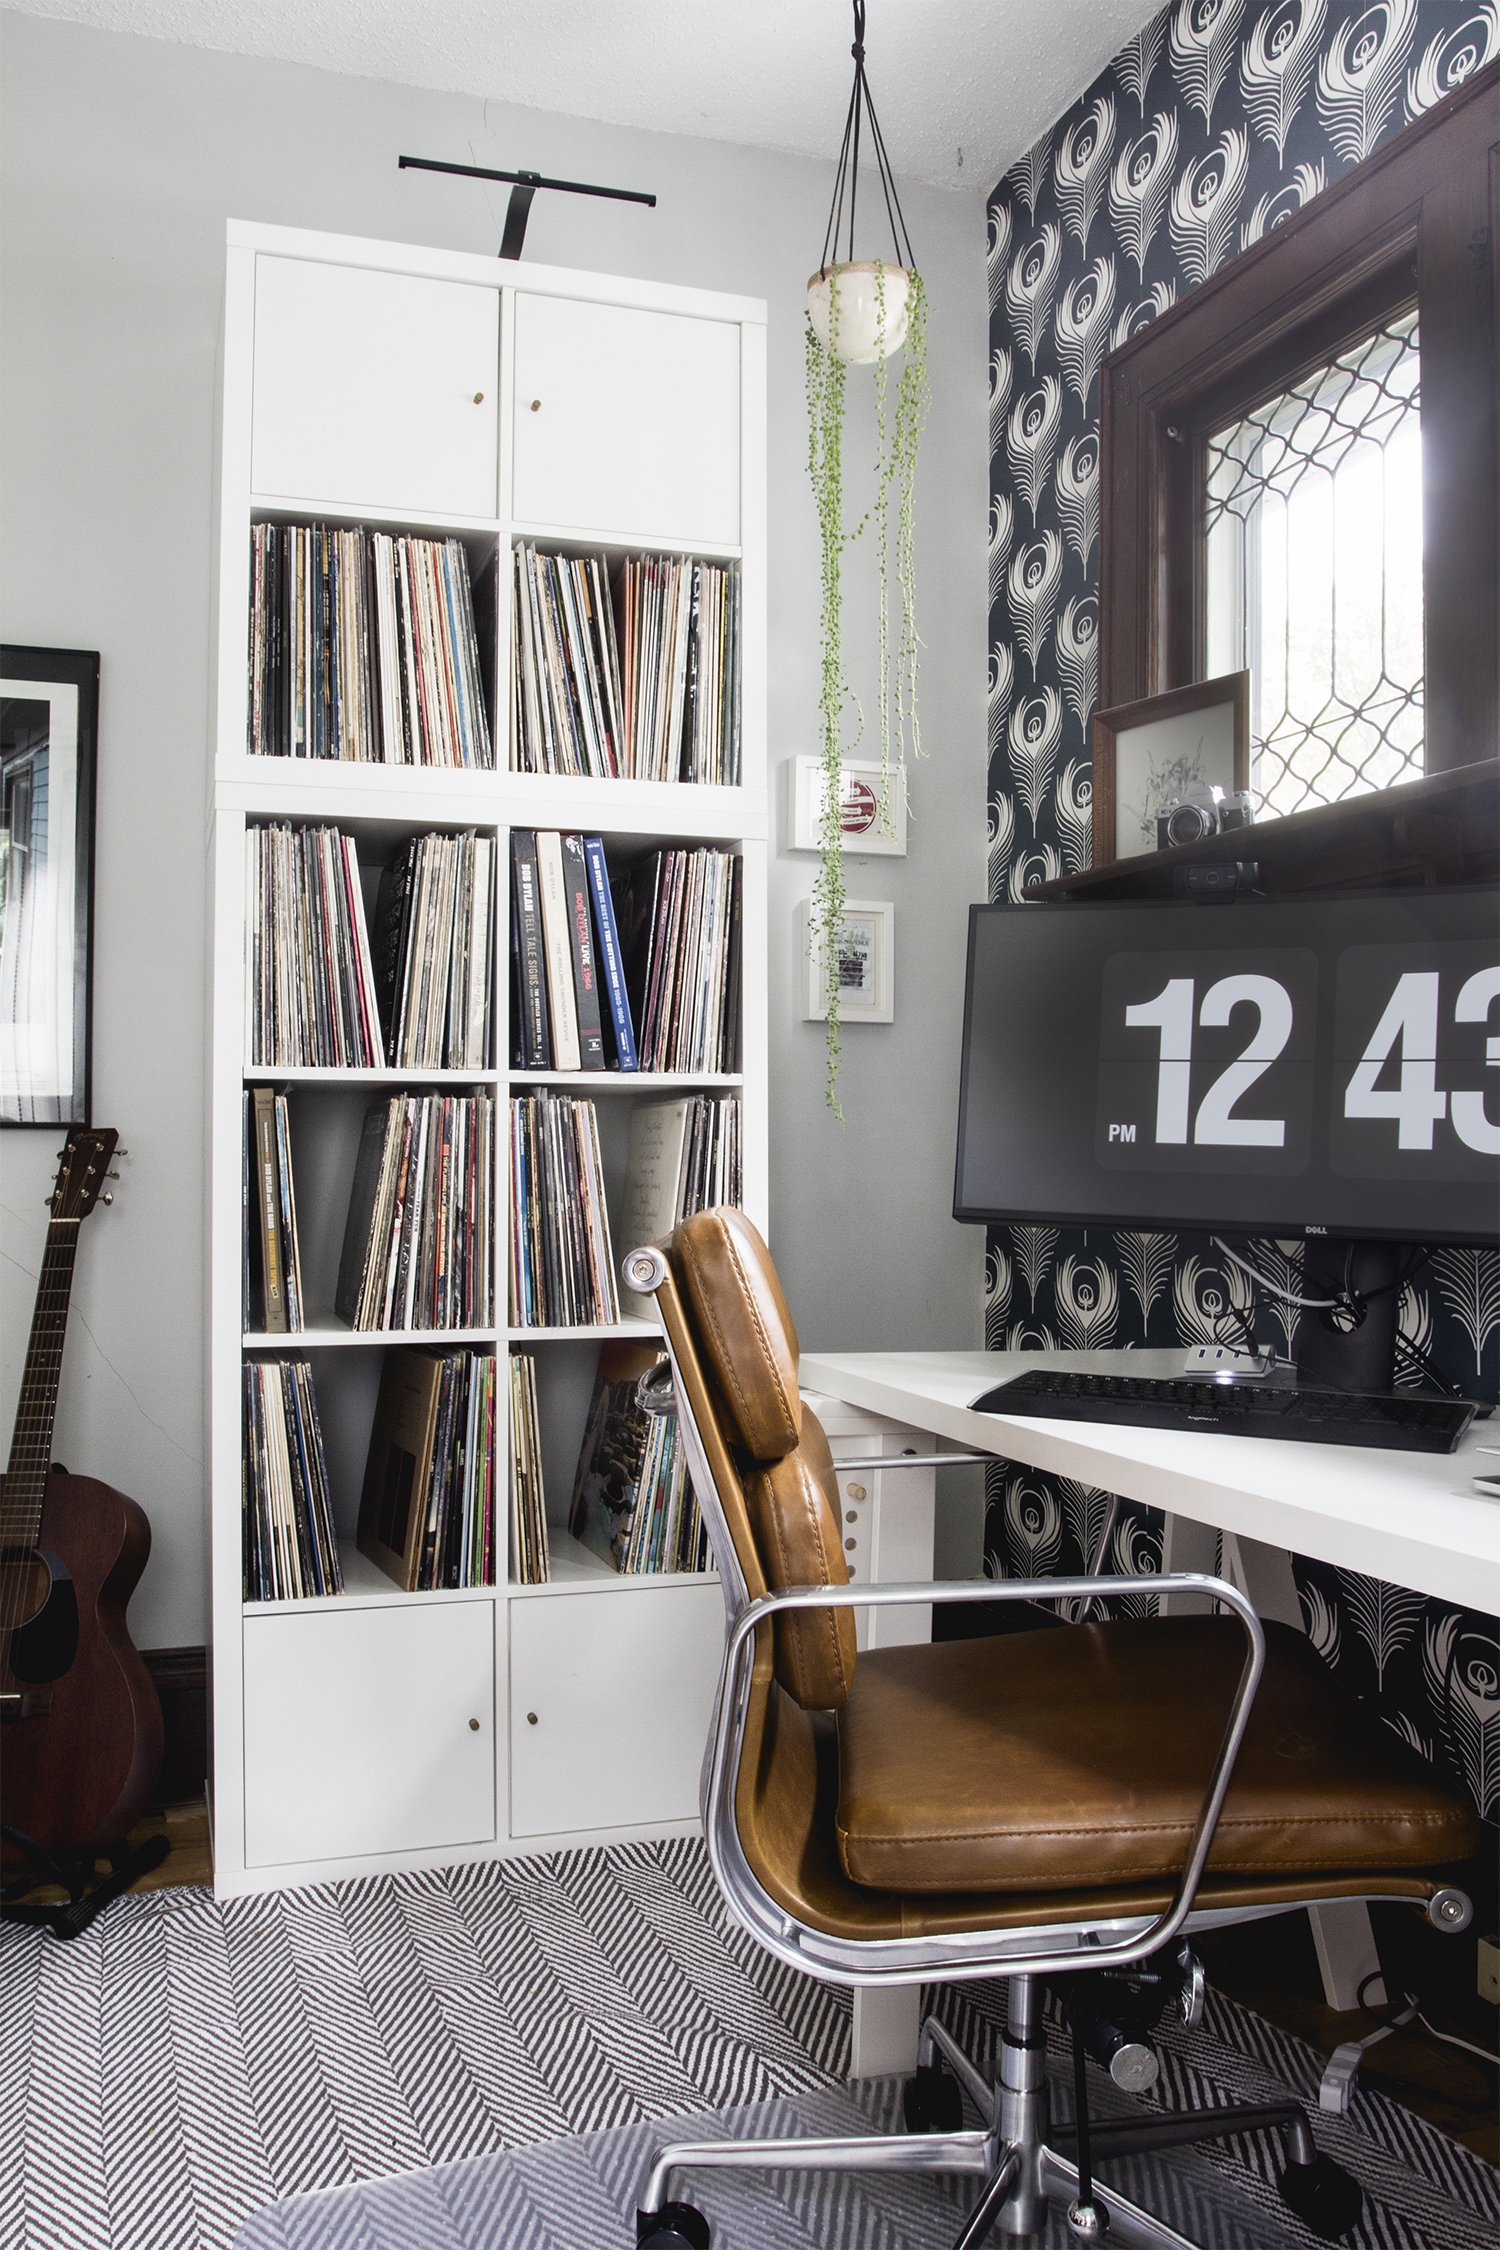 Our Office/Record Room